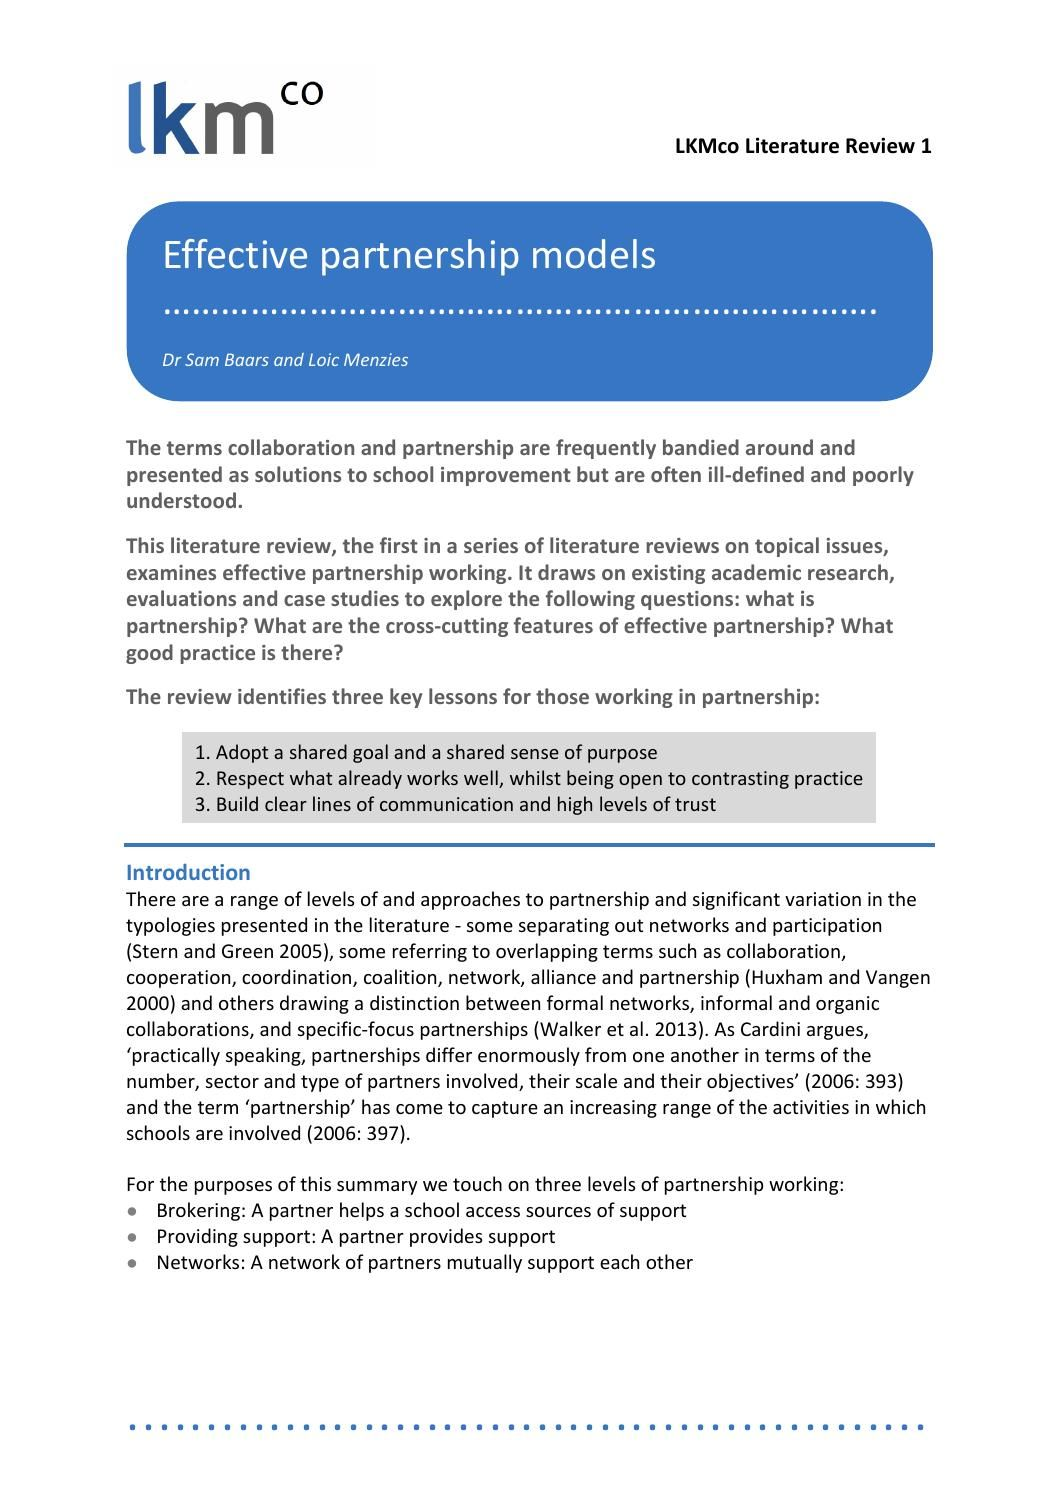 identify the features of effective partnership working